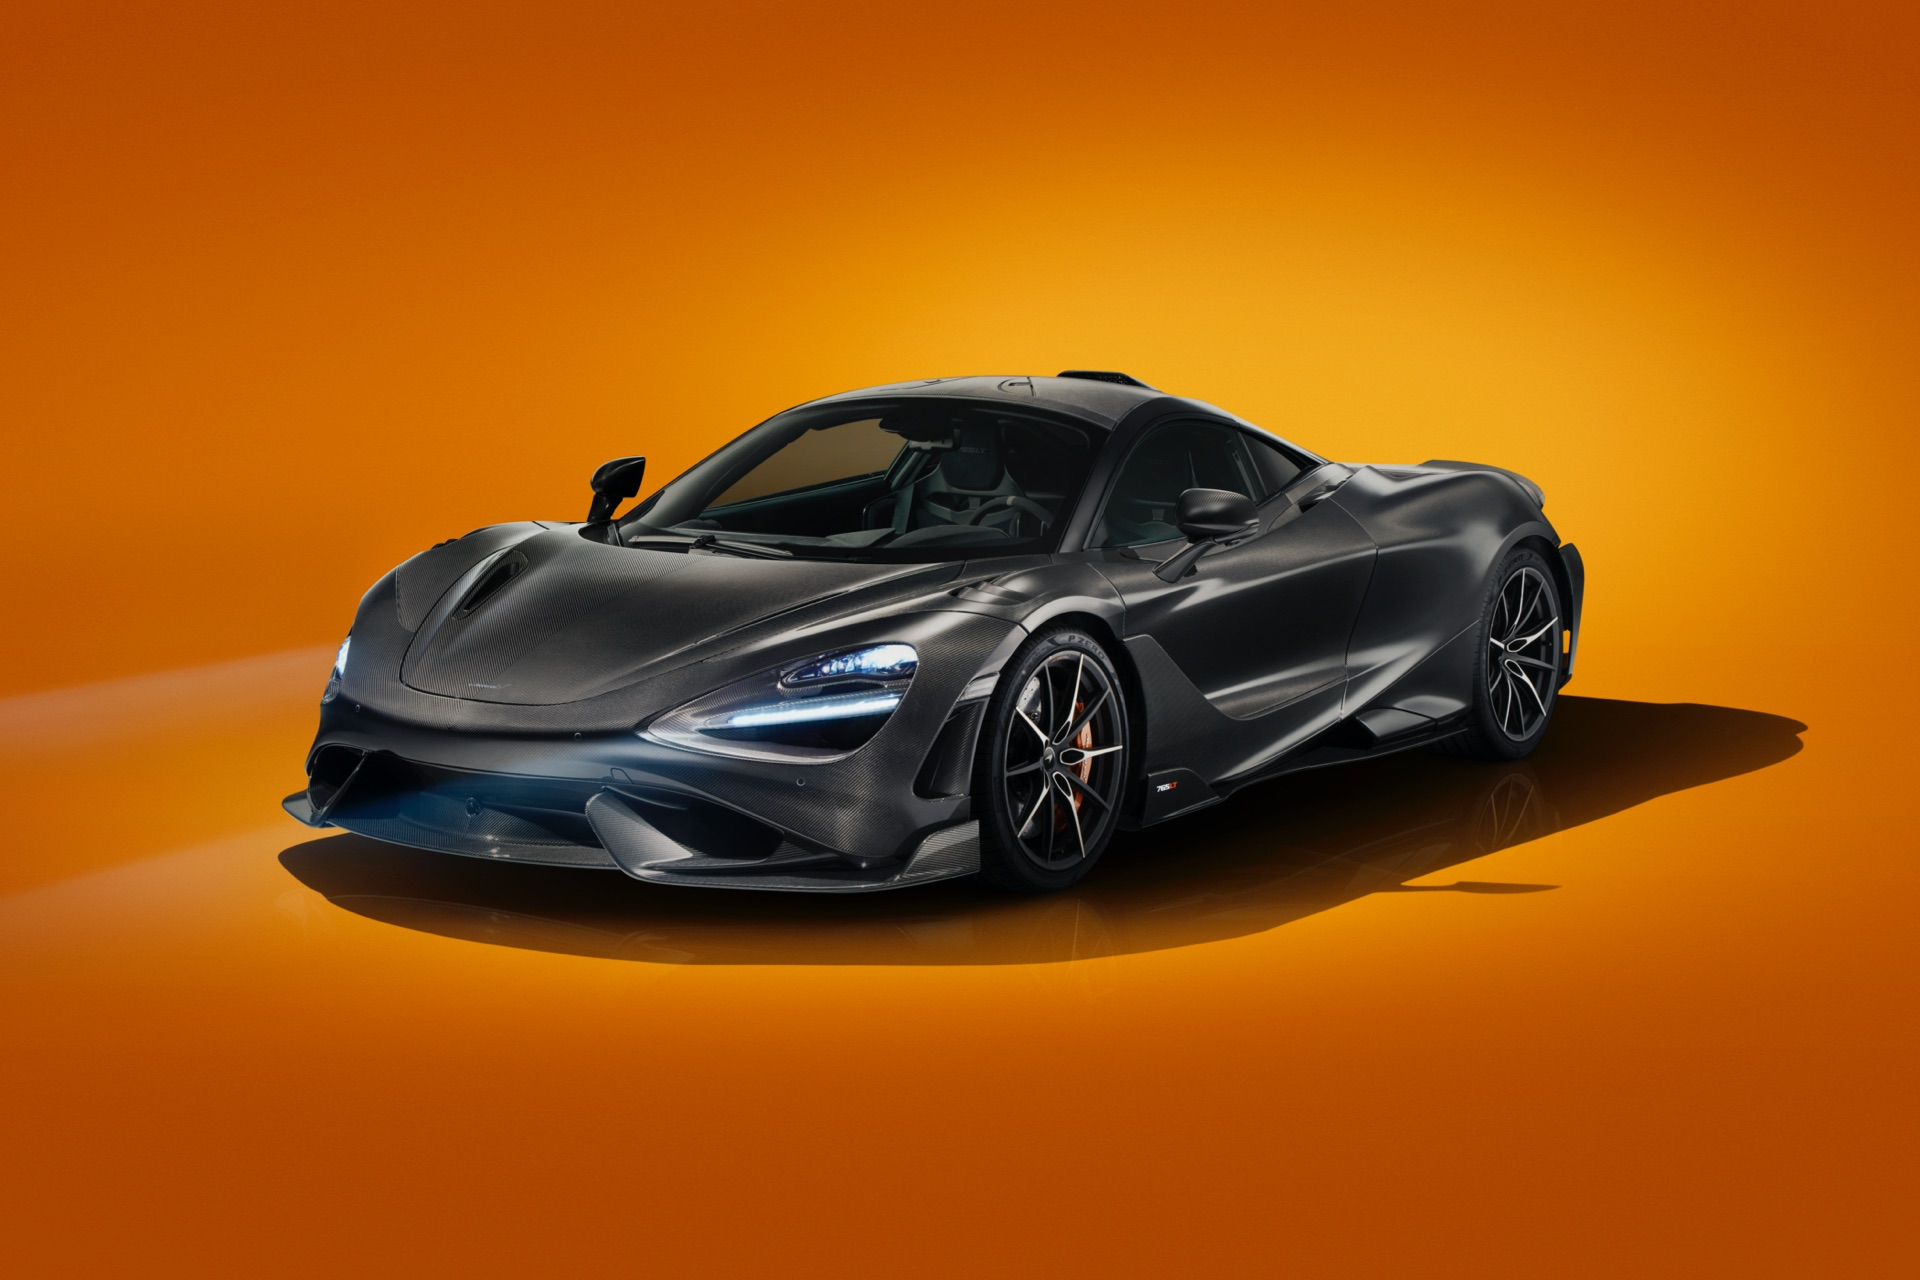 McLaren 765LT Sold Out for 2020, Performance Statistics Revised